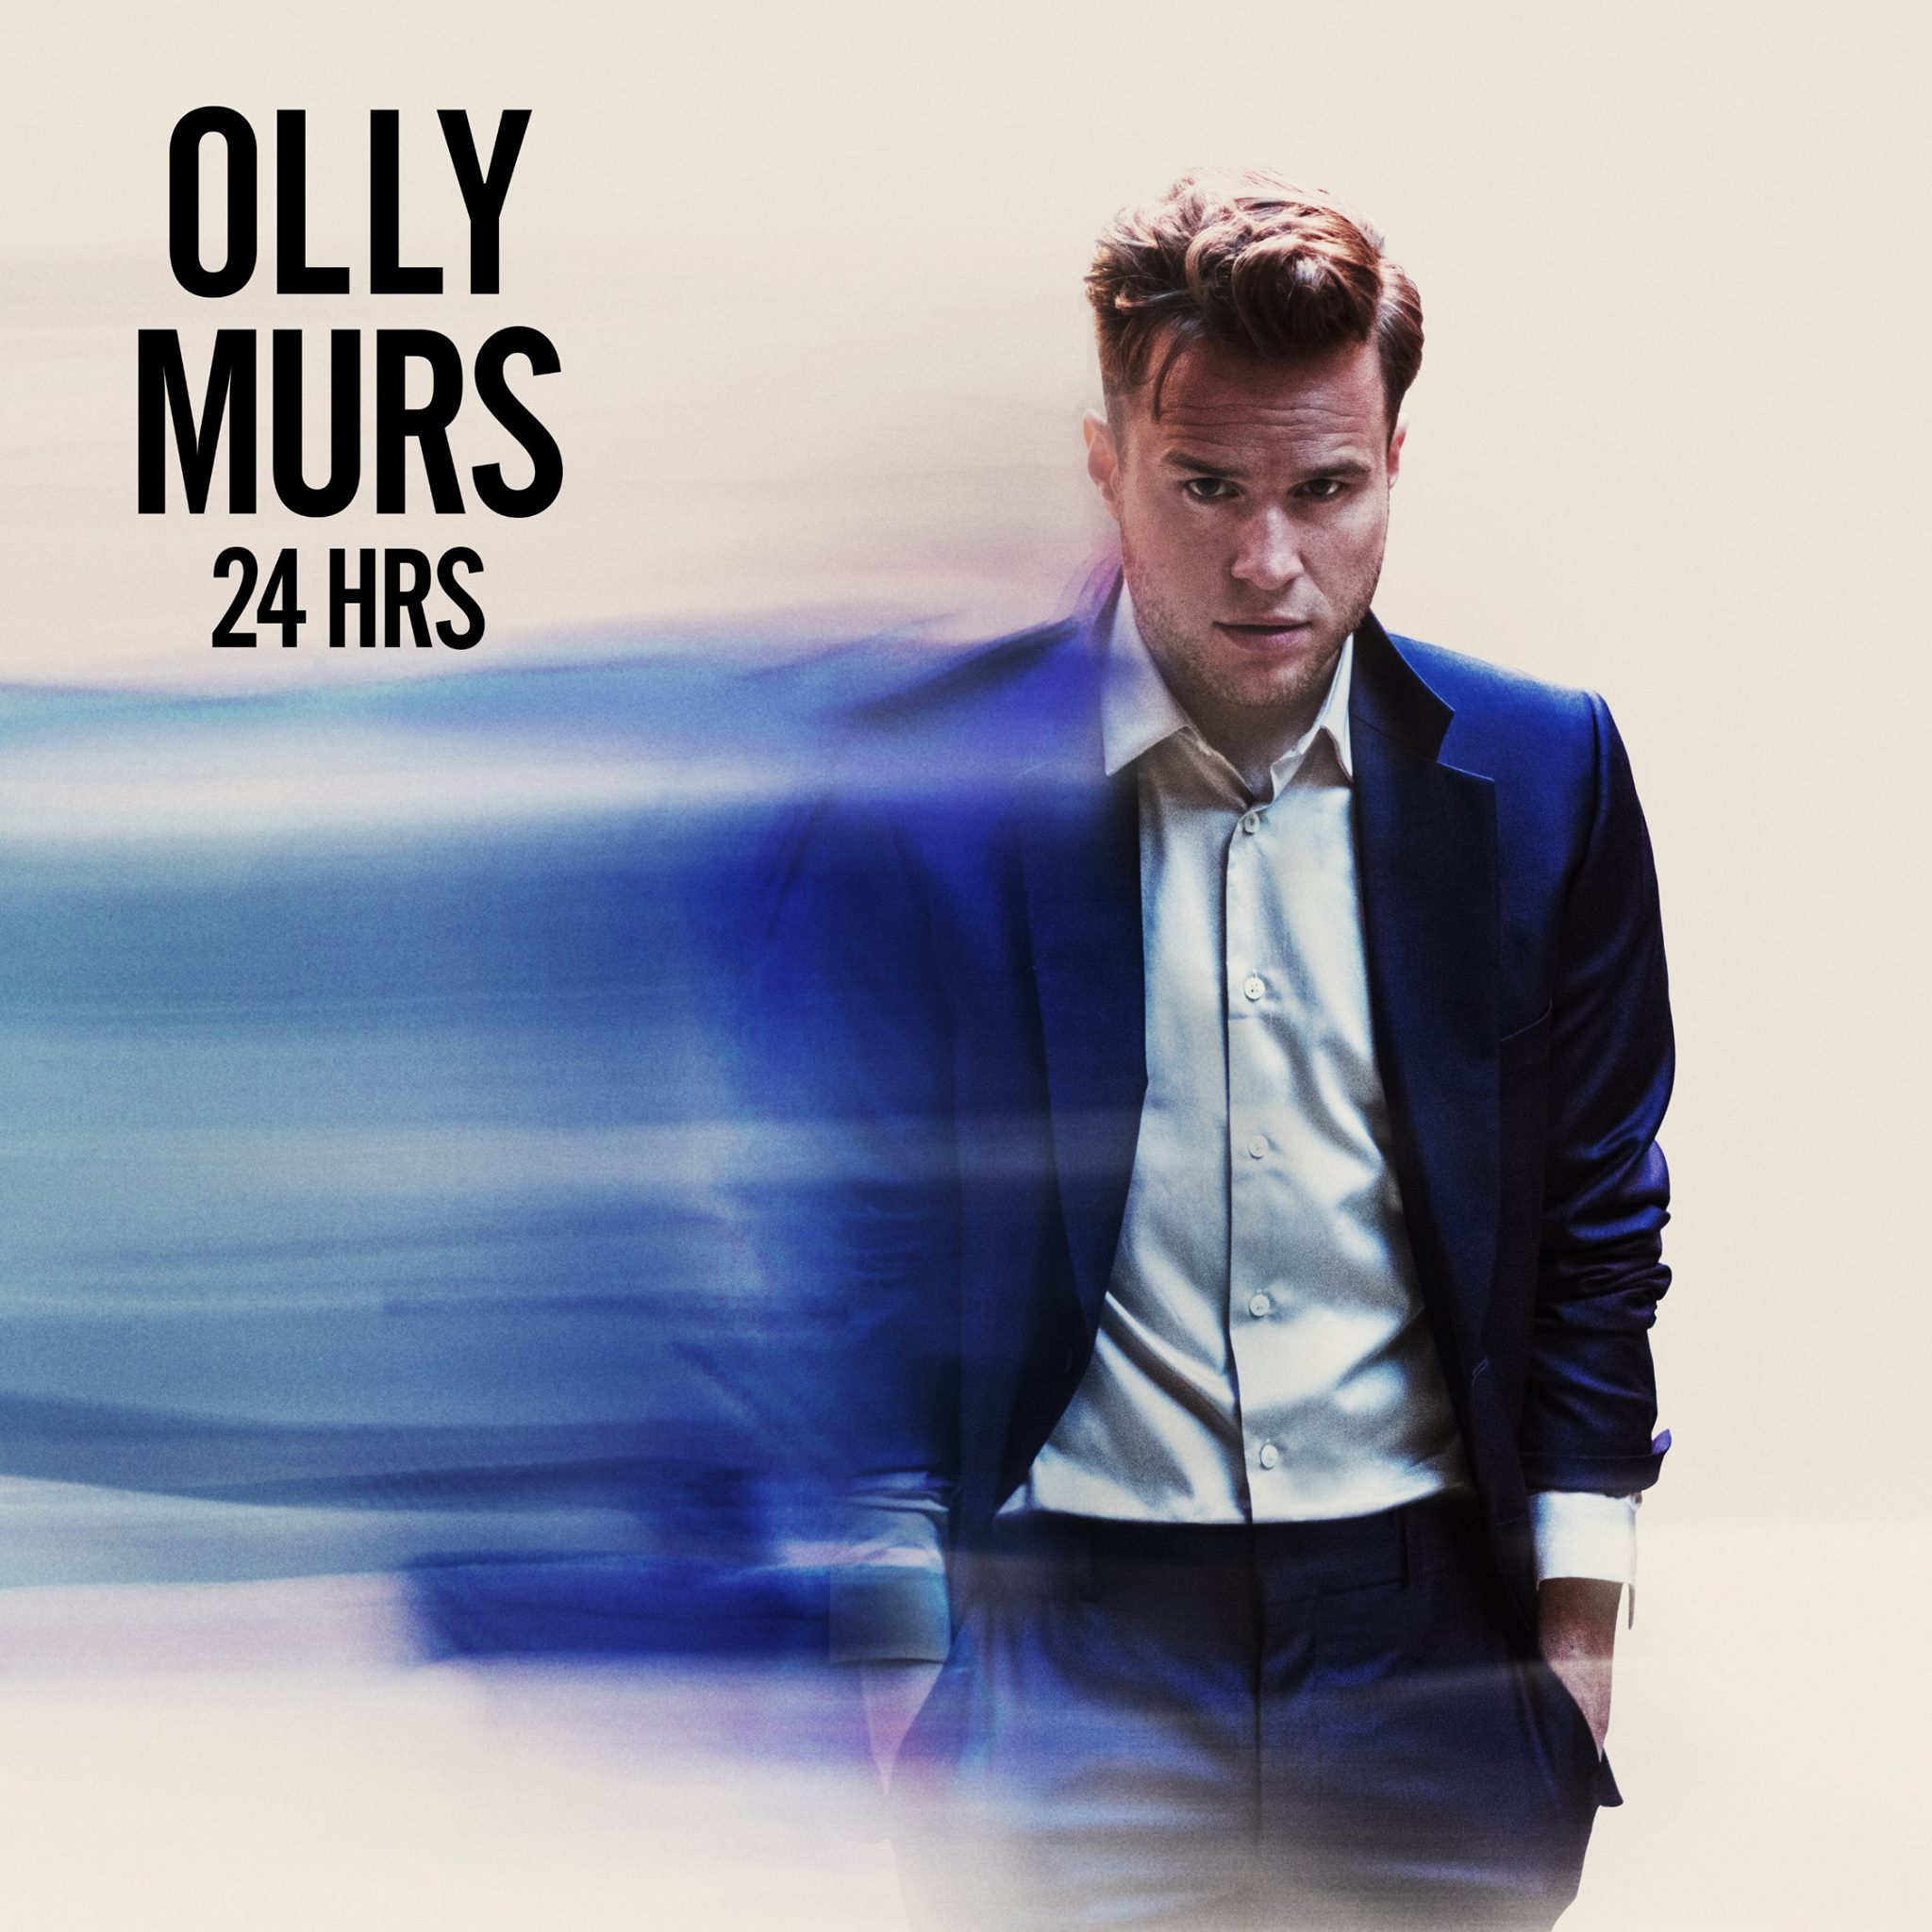 What will David think of the new Olly Murs album '24 Hrs'? Find out below  in his latest review! When I first discovered Olly Murs thanks to a little  know ...